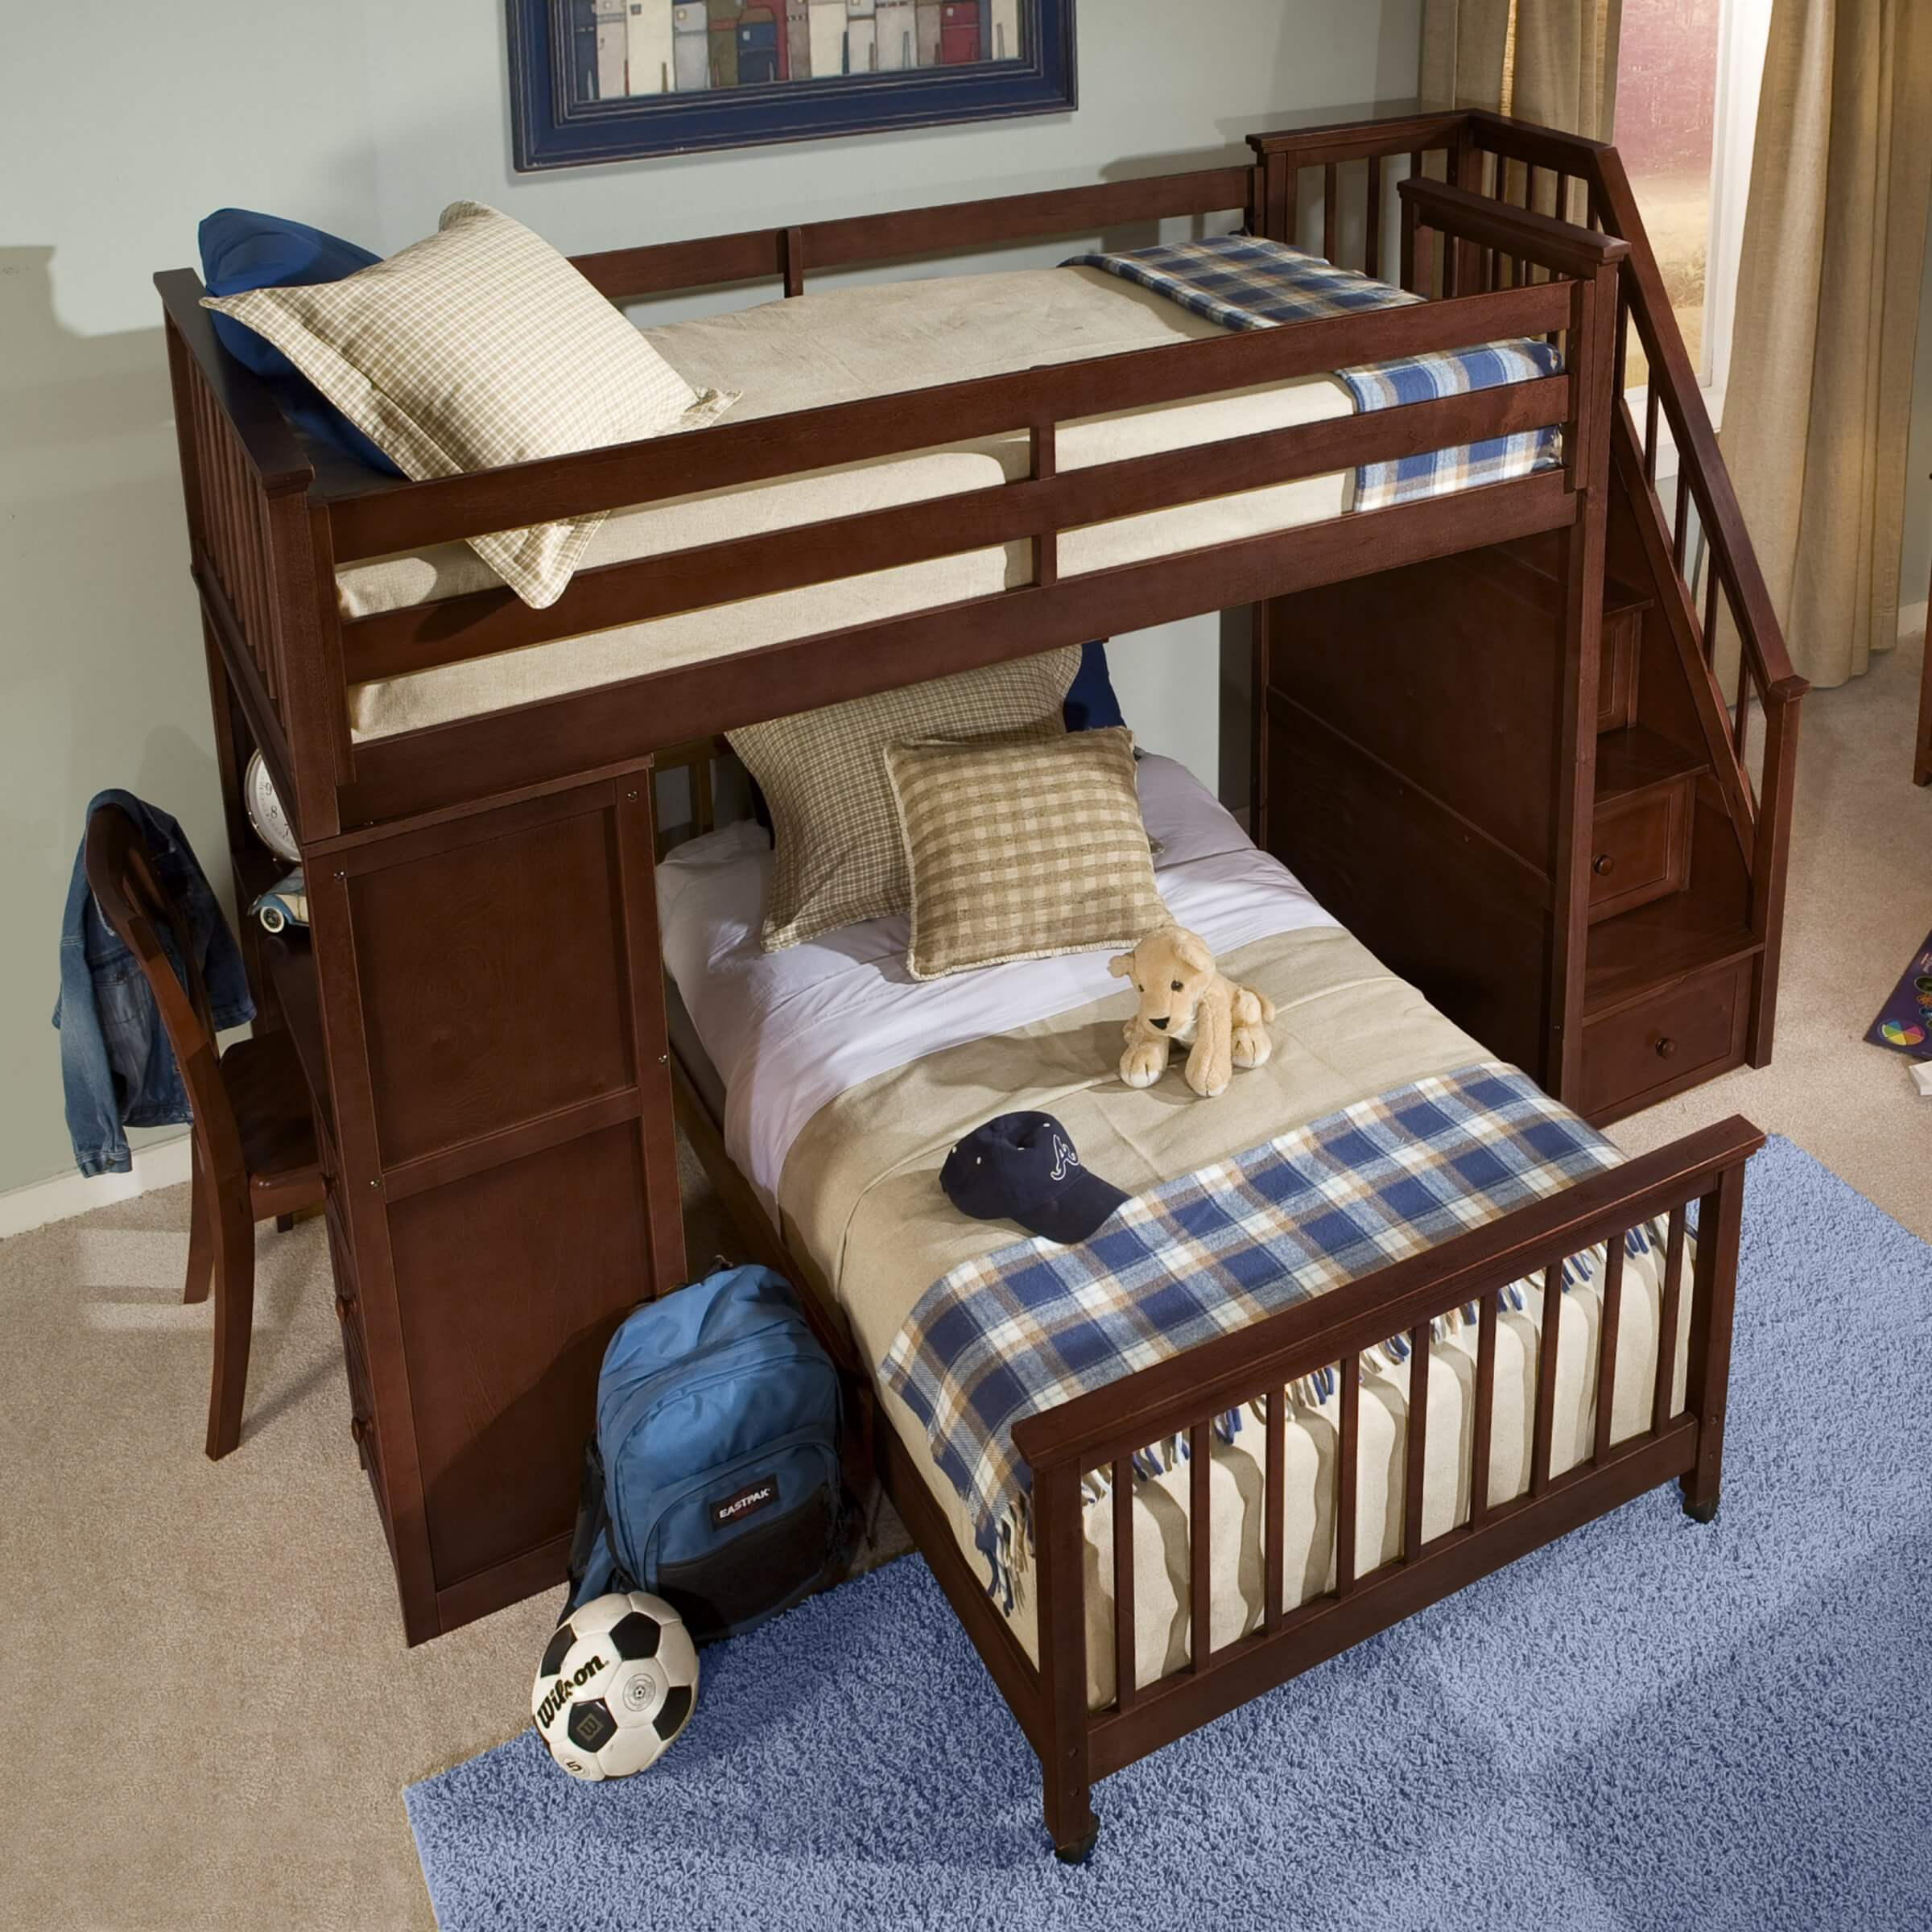 Cherry finished hardwood L-shaped bunk that gives you the option for a full or twin lower bed. Access to the upper bunk is via narrow staircase with railing. The other side of the unit includes a desk.